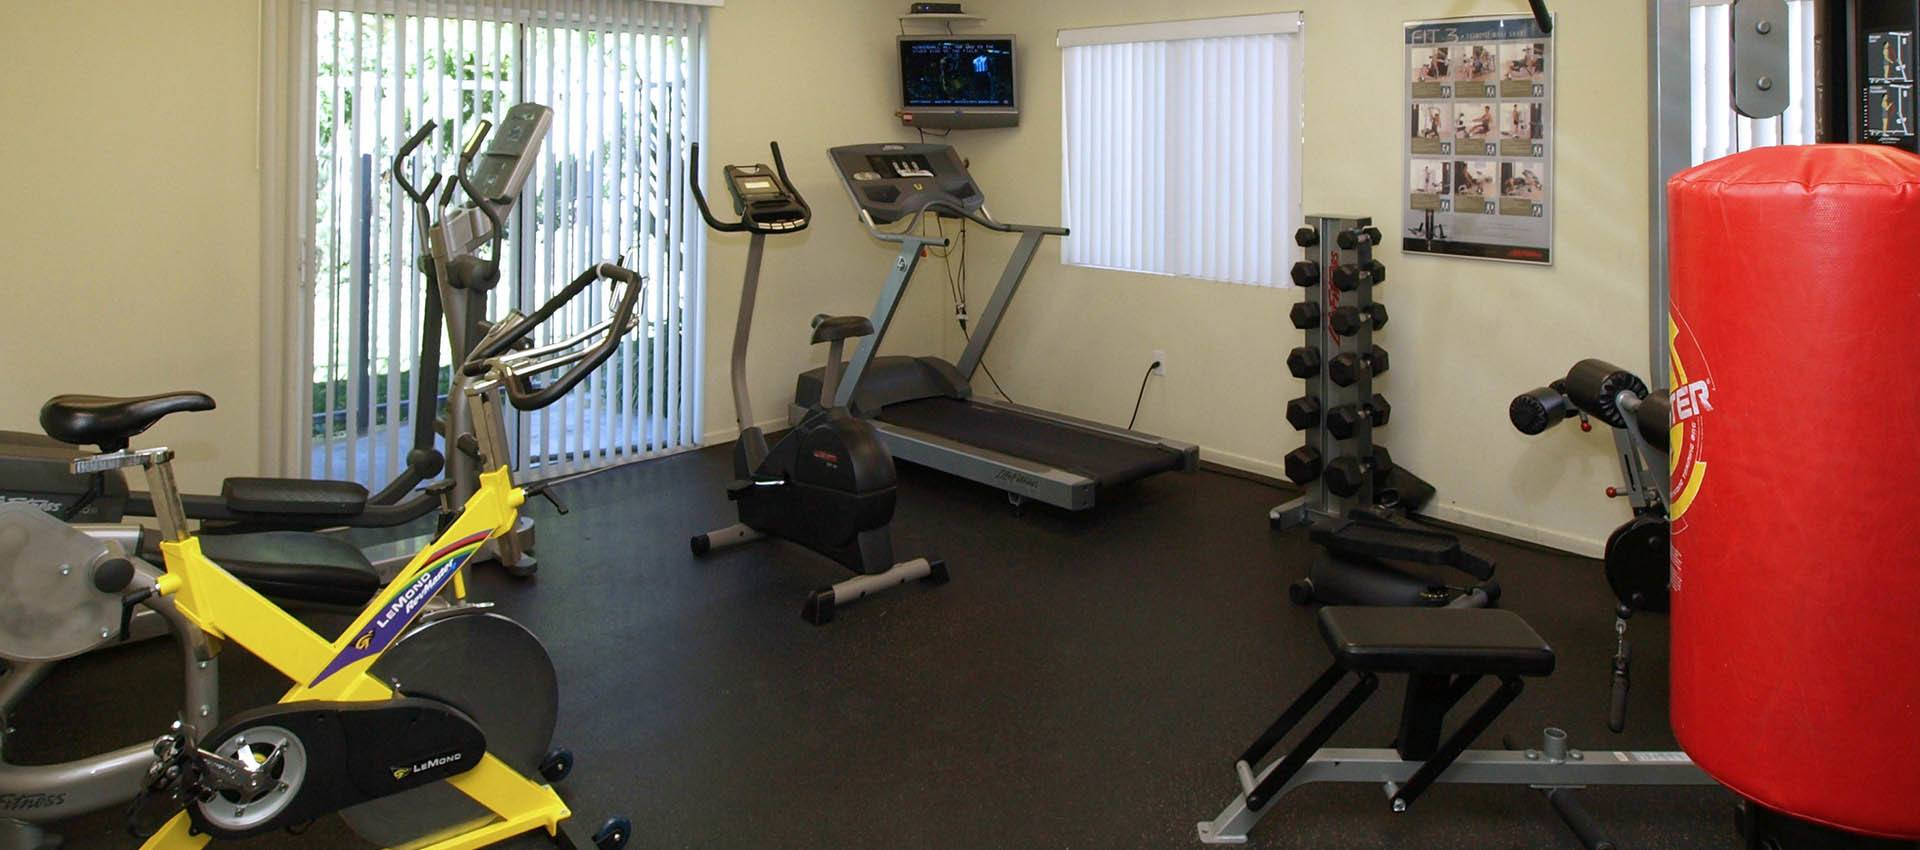 Resident's Fitness Center at Cypress Villas Apartment Homes in Redlands